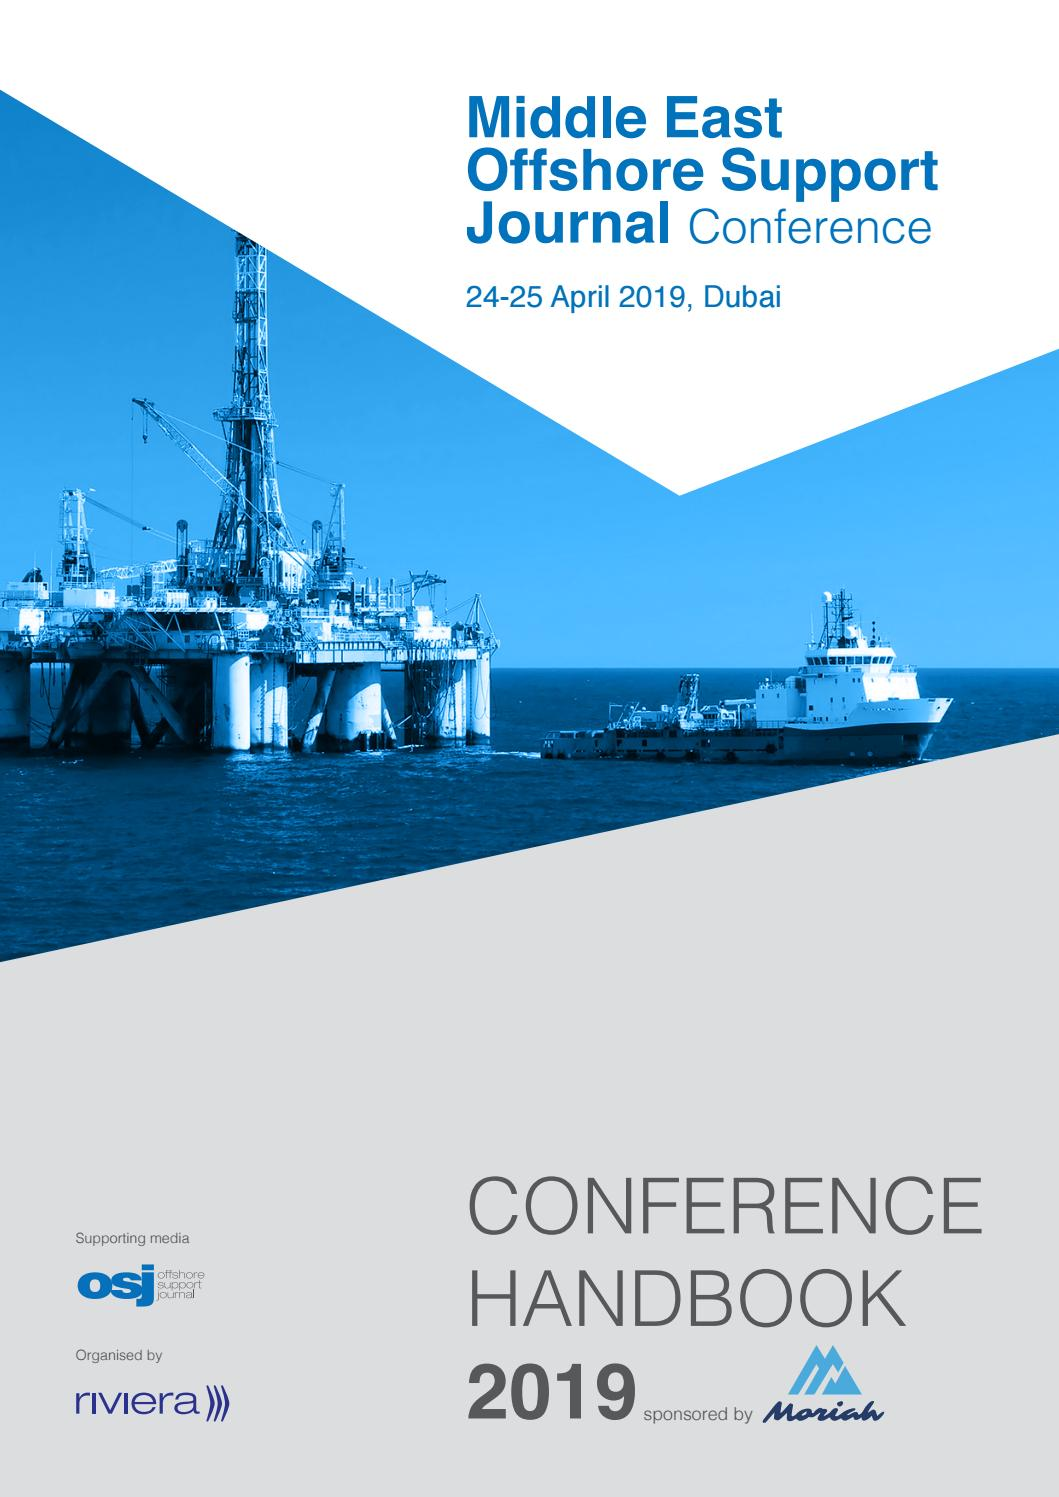 Middle East Offshore Support Journal Conference handbook